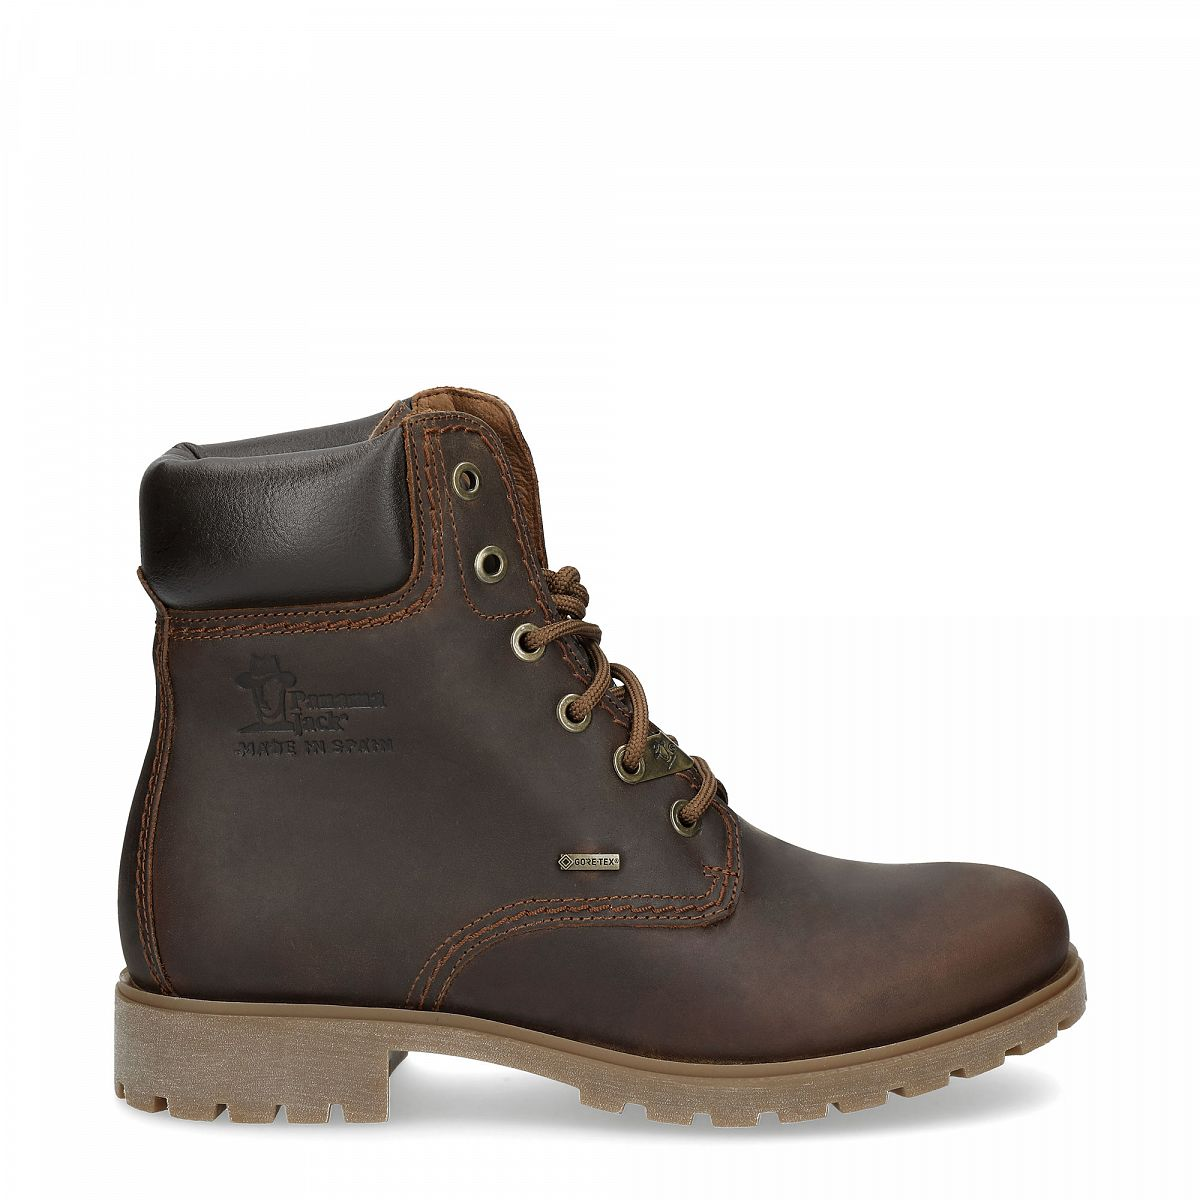 ef383ec073f Women s boot PANAMA 03 GTX natural